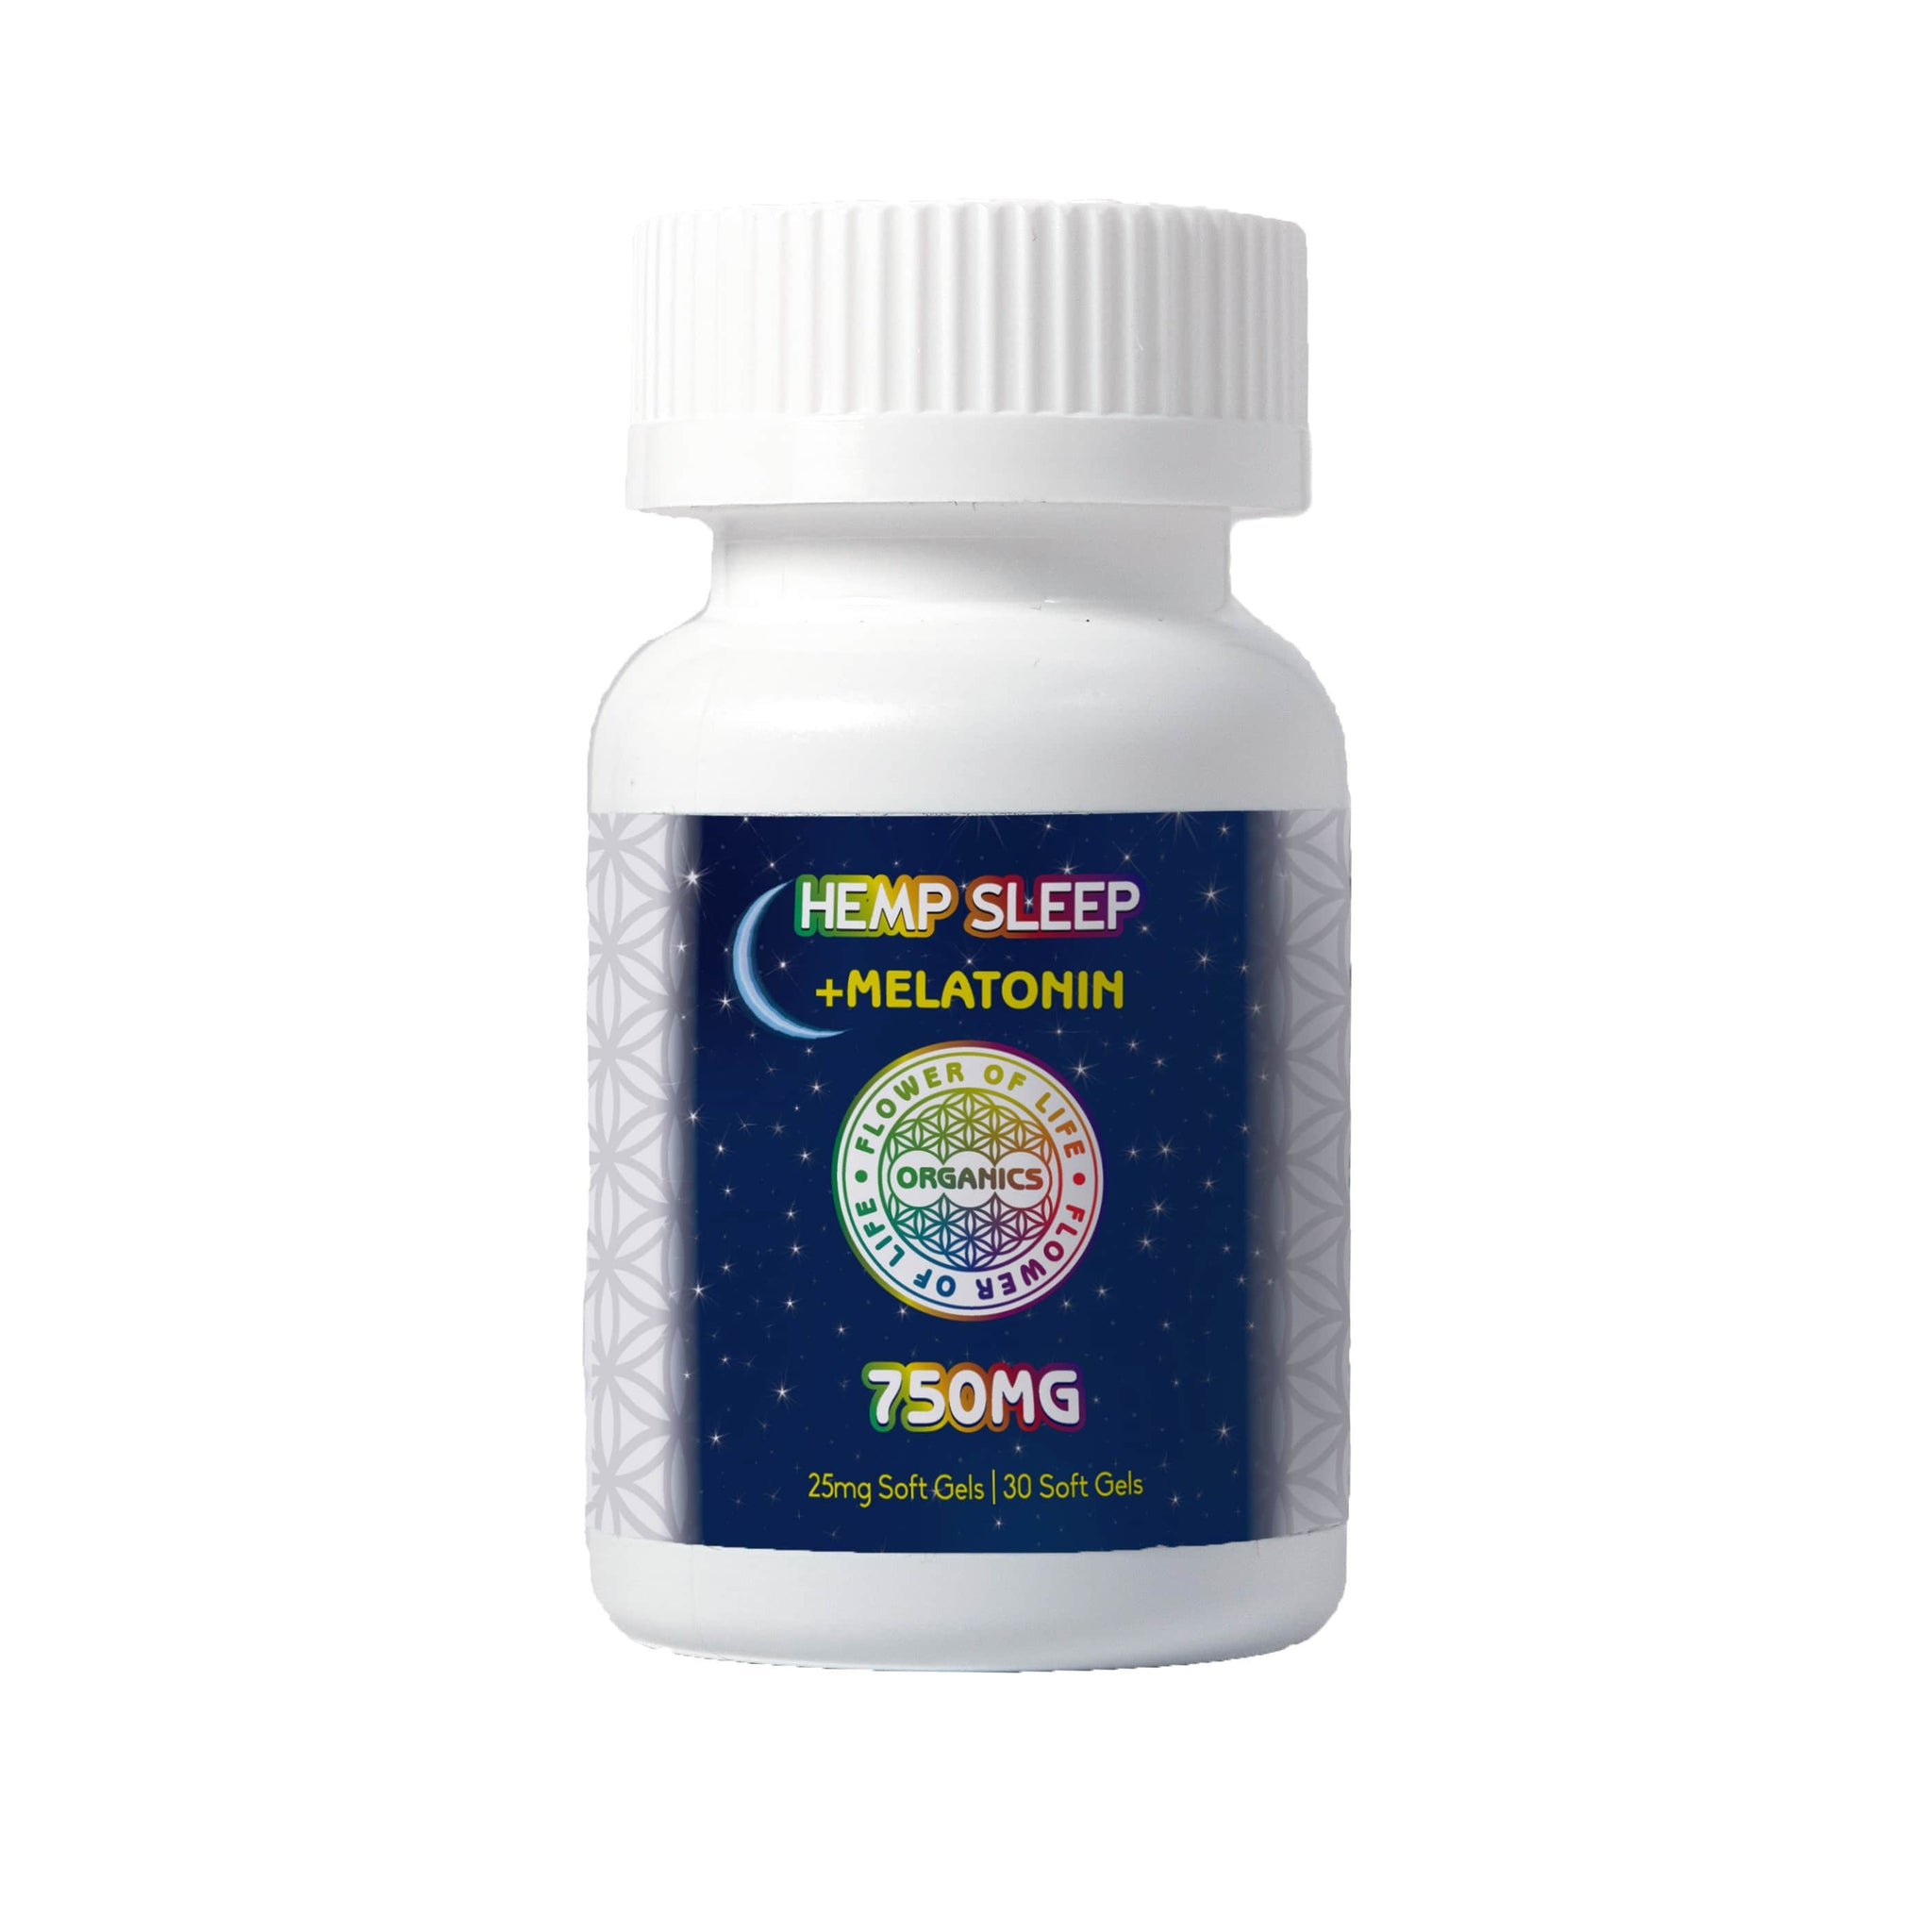 Hemp Oil Sleep Soft Gels (750mg) contain 1mg melatonin to help get to sleep with 25mg Hemp Extract for a full-nights rest